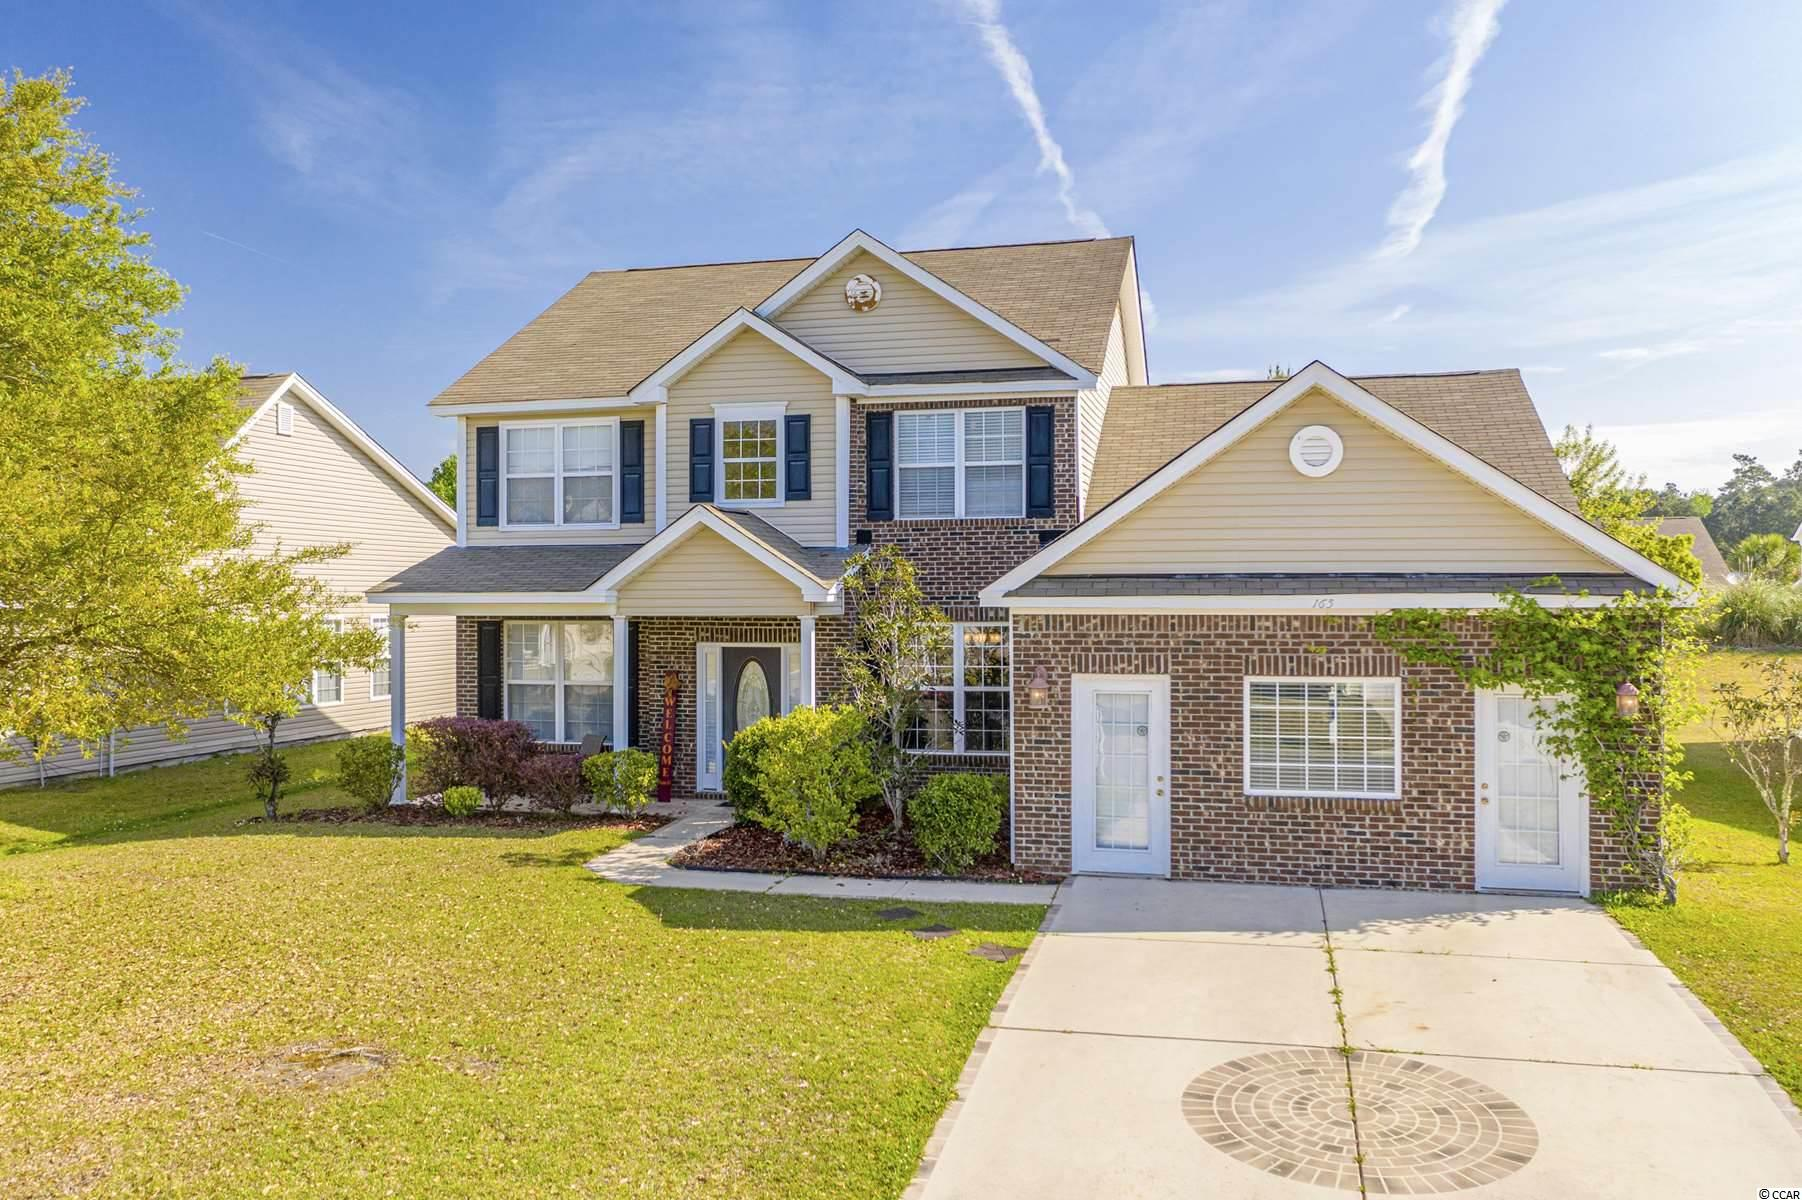 Located in the beautiful community of Foxhorn in Forestbrook, this 4 bed, 2.5 bath home features gorgeous arched walkways, nice neutral colors and a large open floor plan. The large kitchen offers plenty of cabinet and counter space and is large enough for those family get togethers. The community is centrally located to all that the Grand Strand offers - Shopping, dining & entertainment, area attractions, hospitals, great schools, the ICW, the Beach and so much more! Don't miss out on this beautiful home ! Call today for a showing !